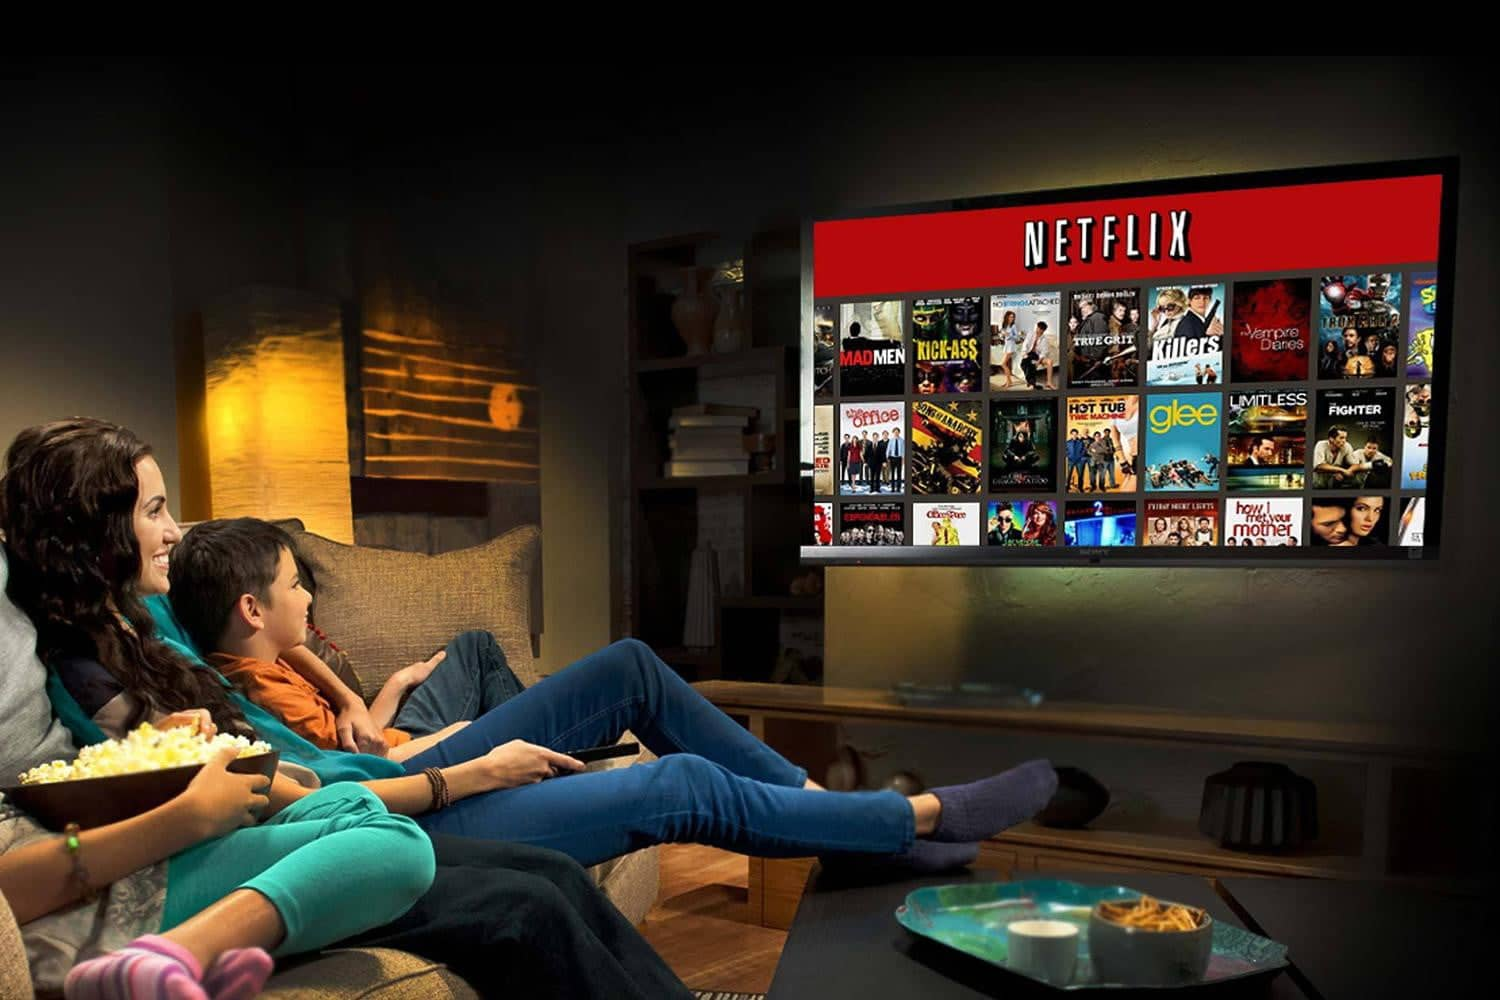 Pros and Cons of Internet TV: NETFLIX Pros and Cons